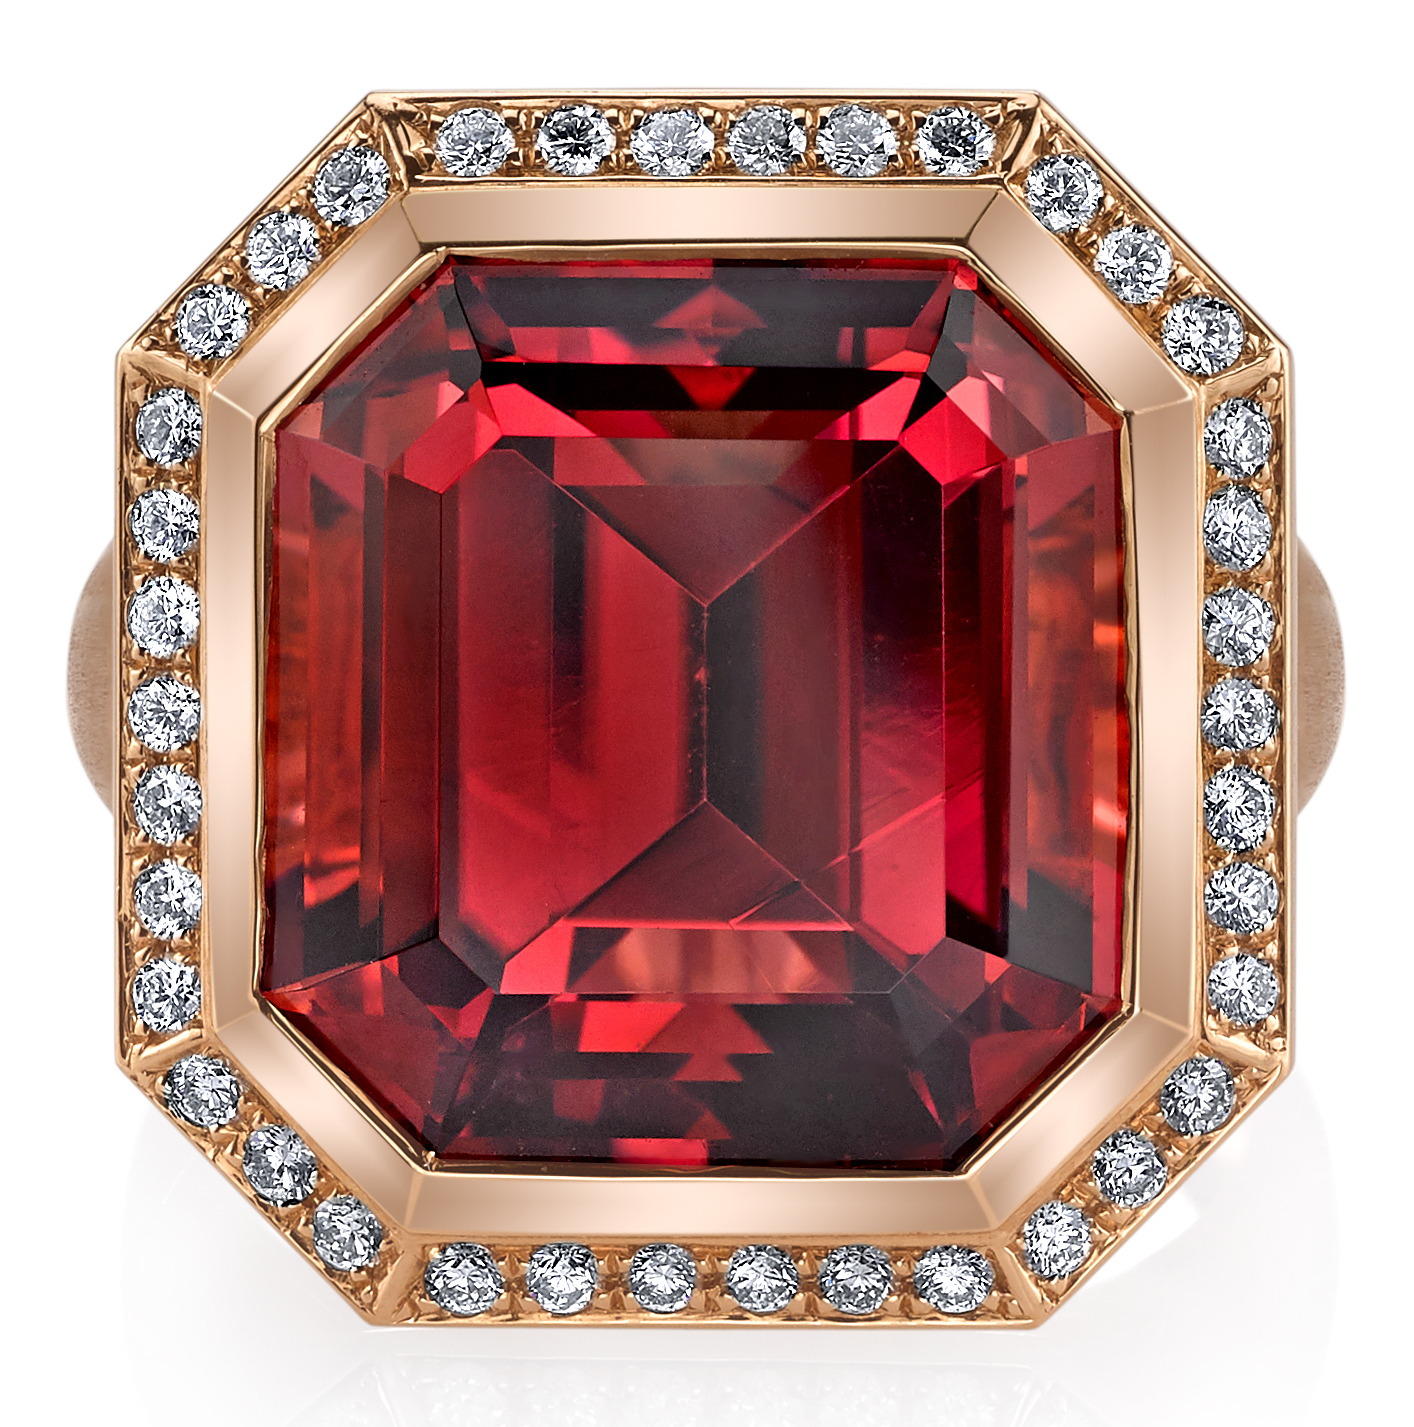 Omi Prive ring | JCK On Your Market